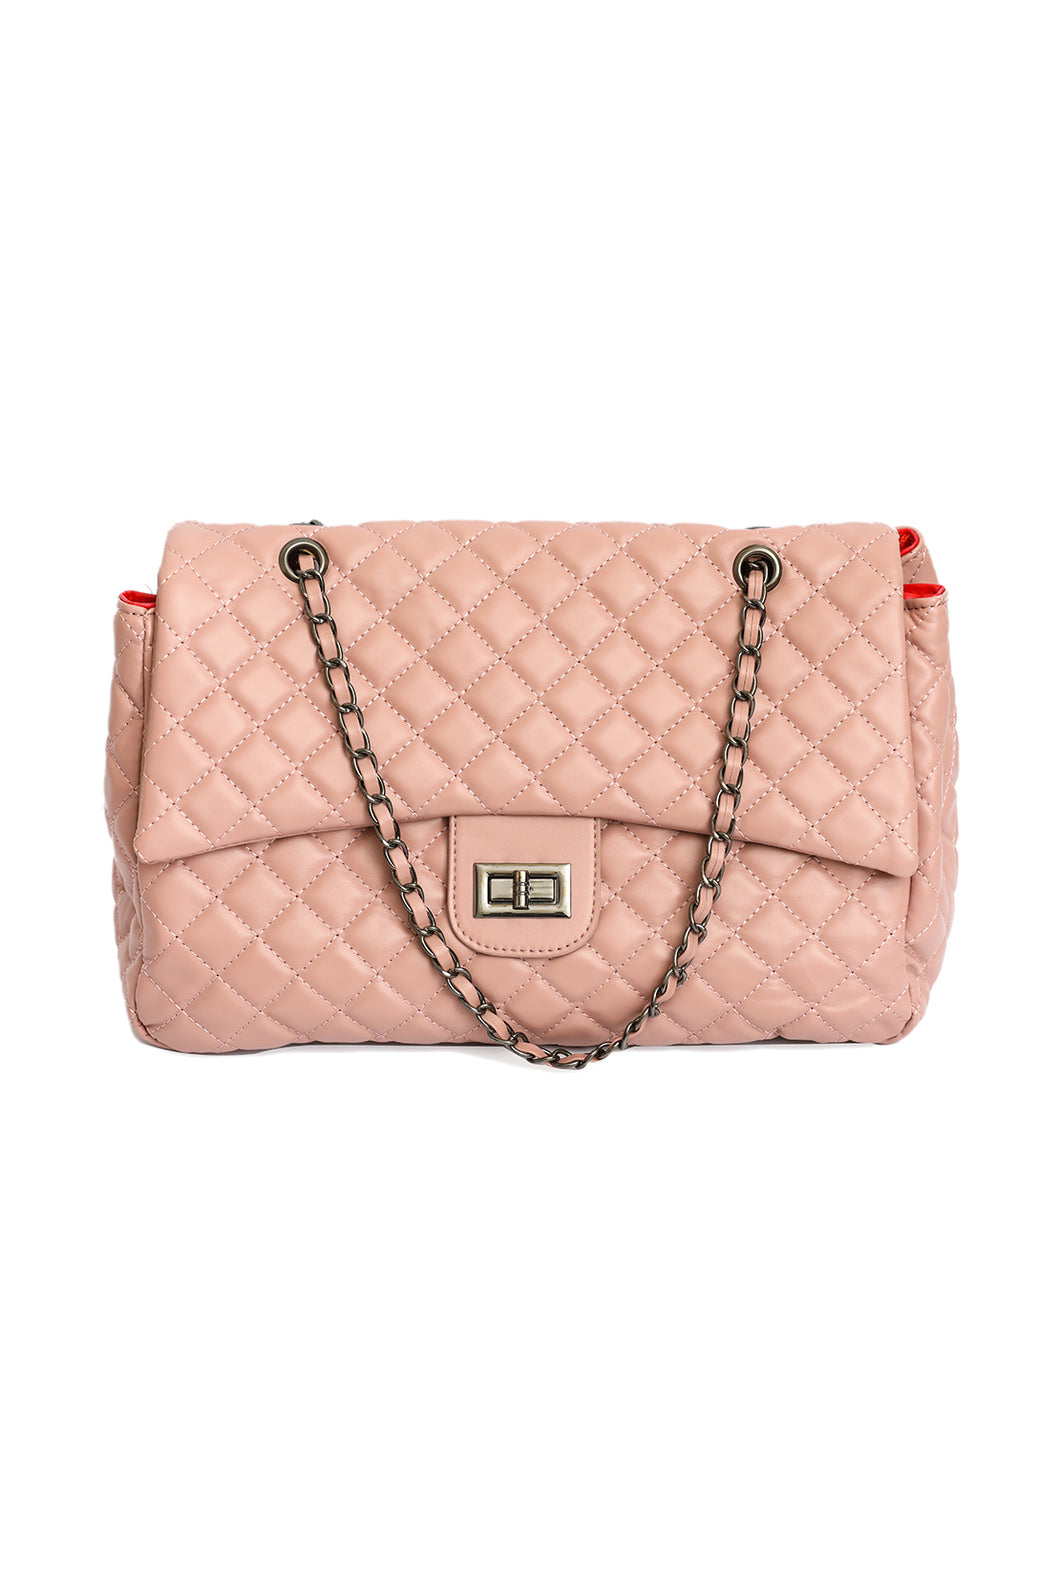 Quilted Chain Bag - Pink